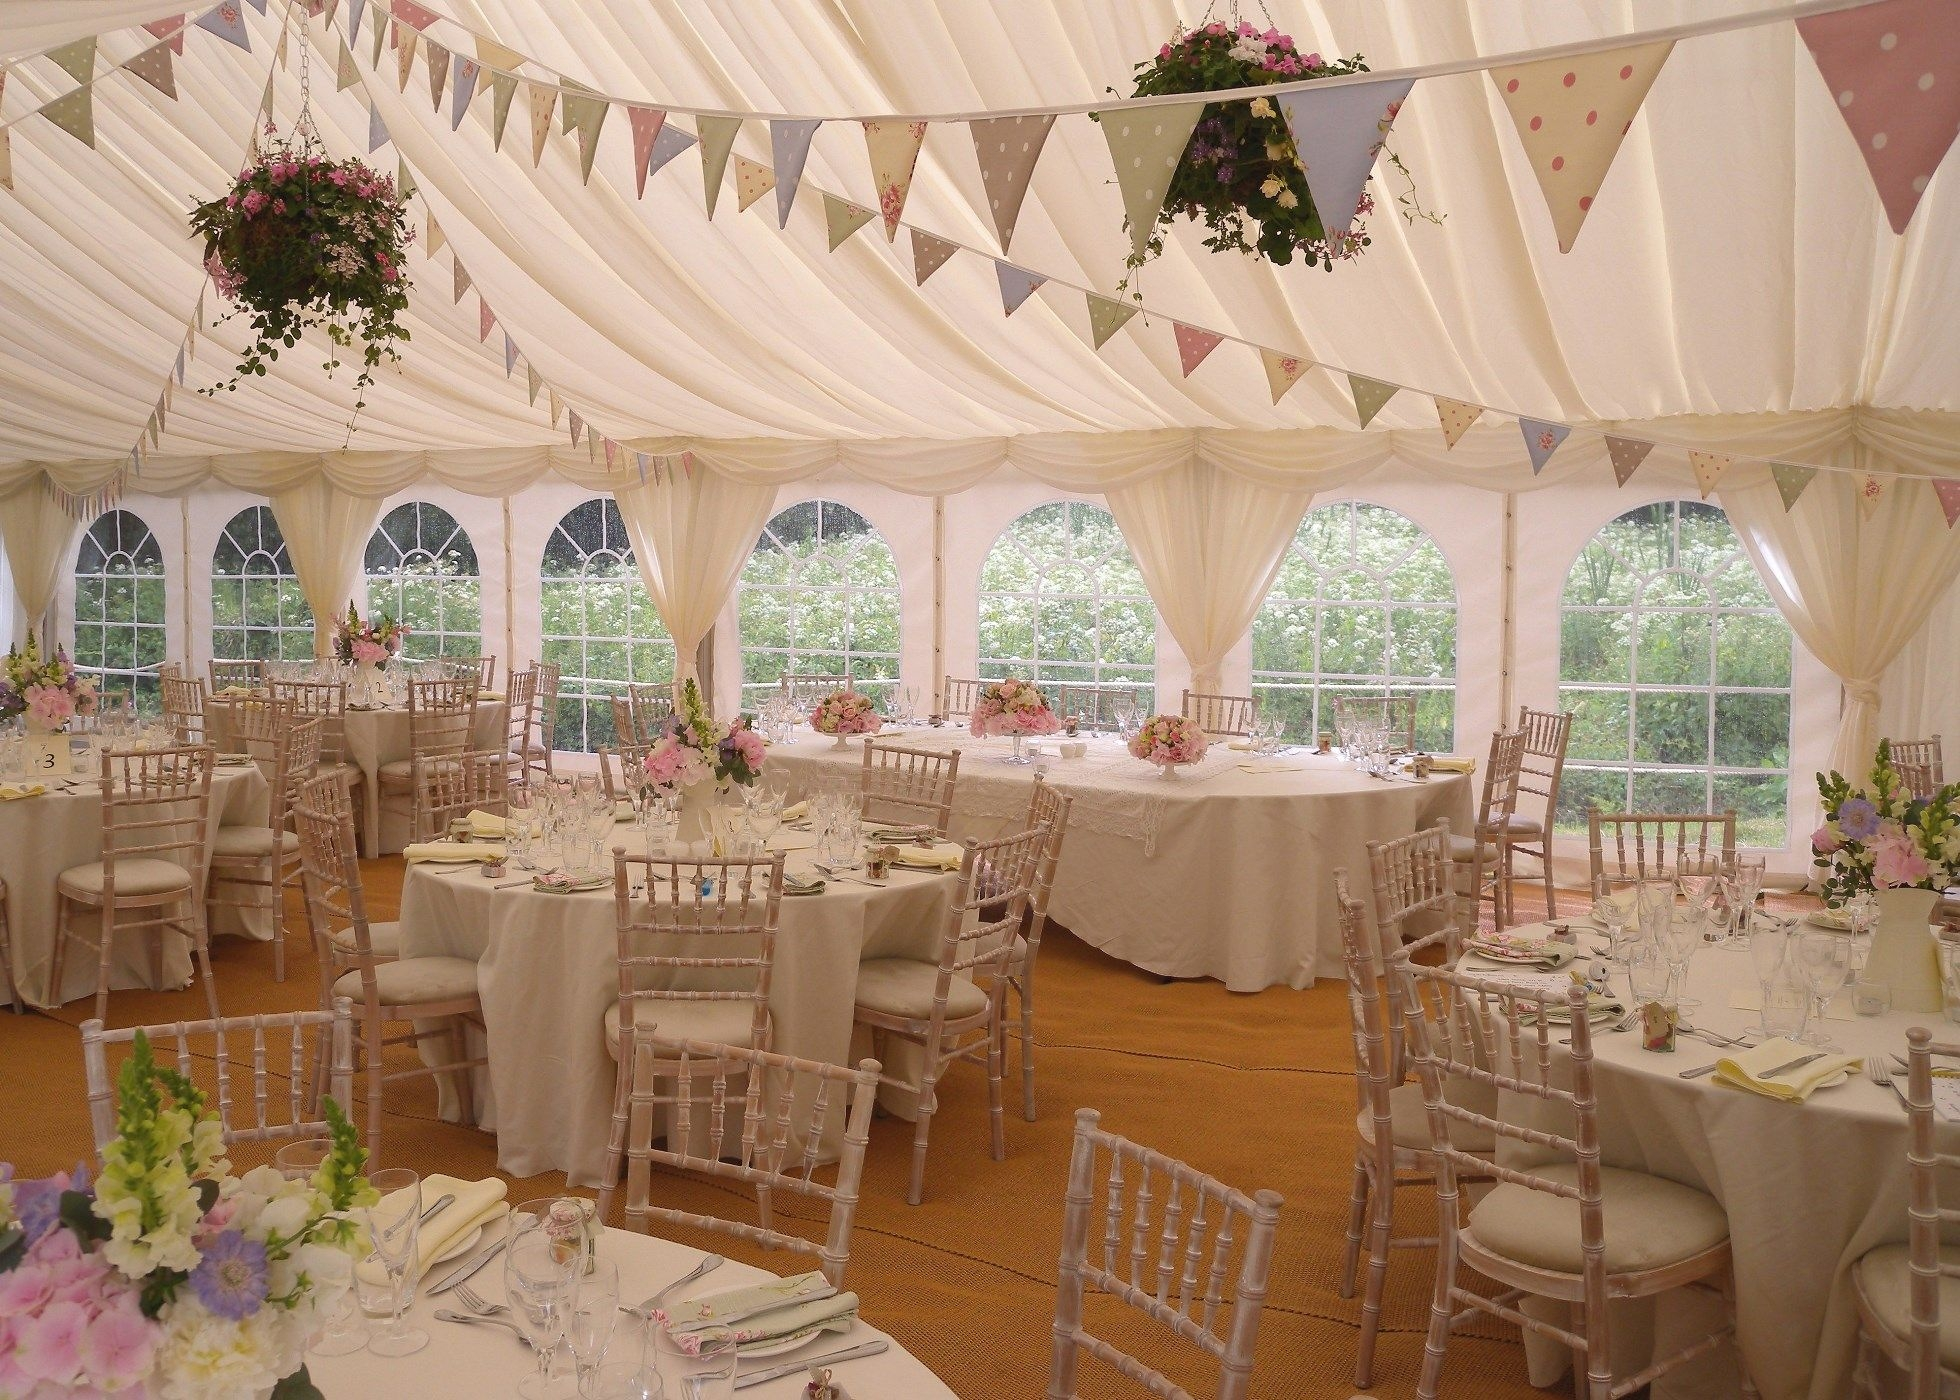 Interior photo of wedding marquee with bunting and hanging baskets